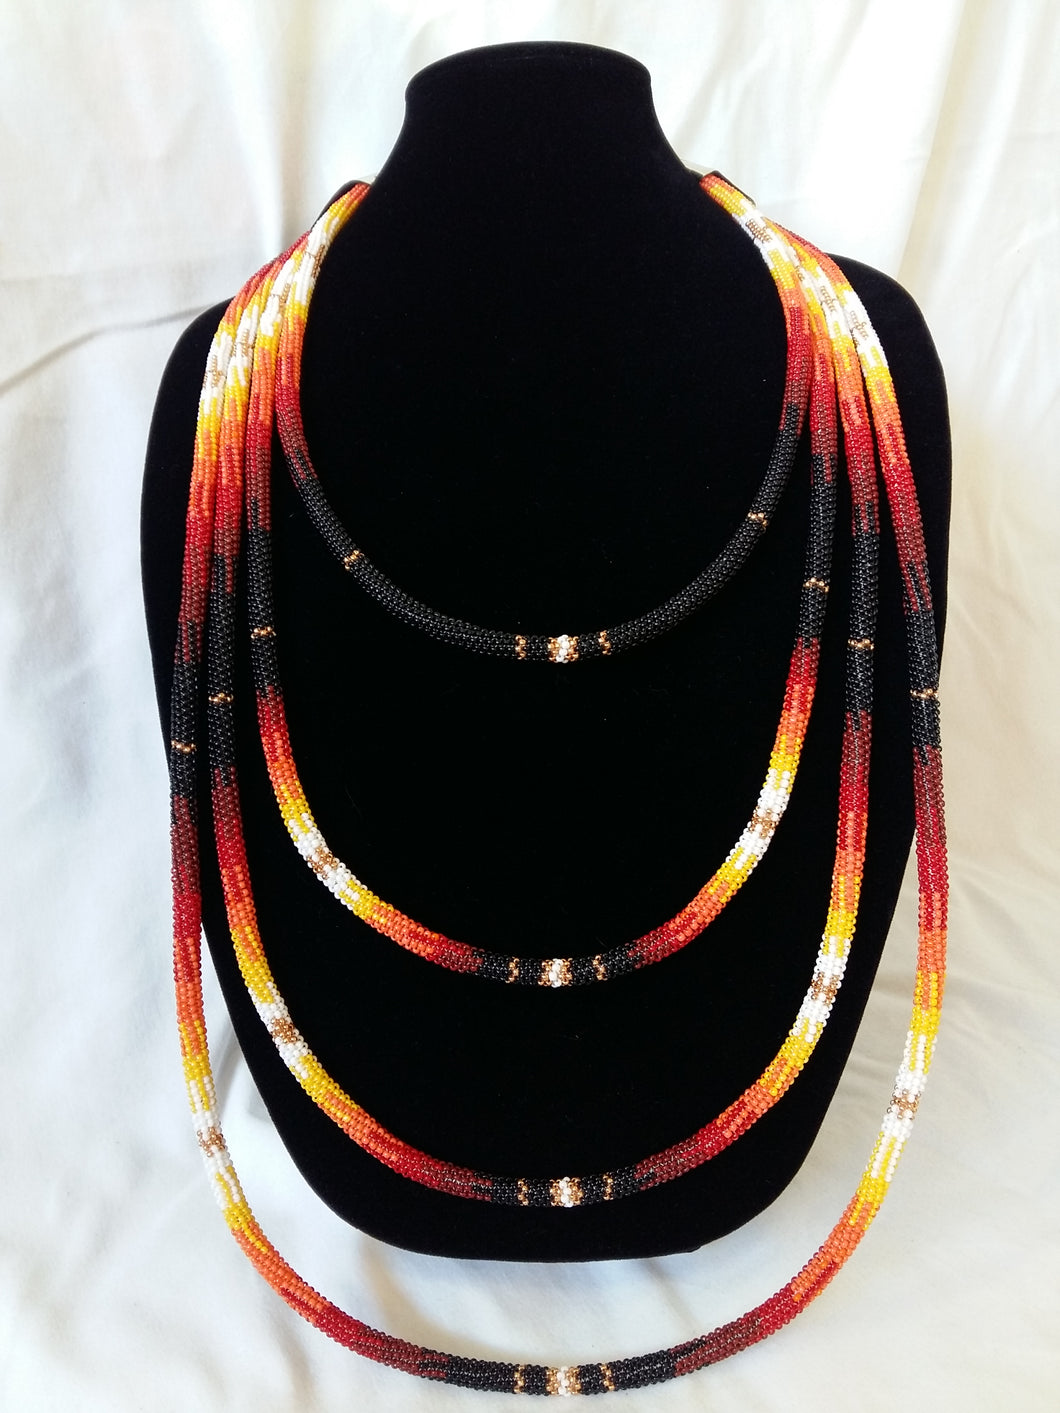 Beaded Peyote Stitched Statement Necklace - Iskotew (Fire) Design